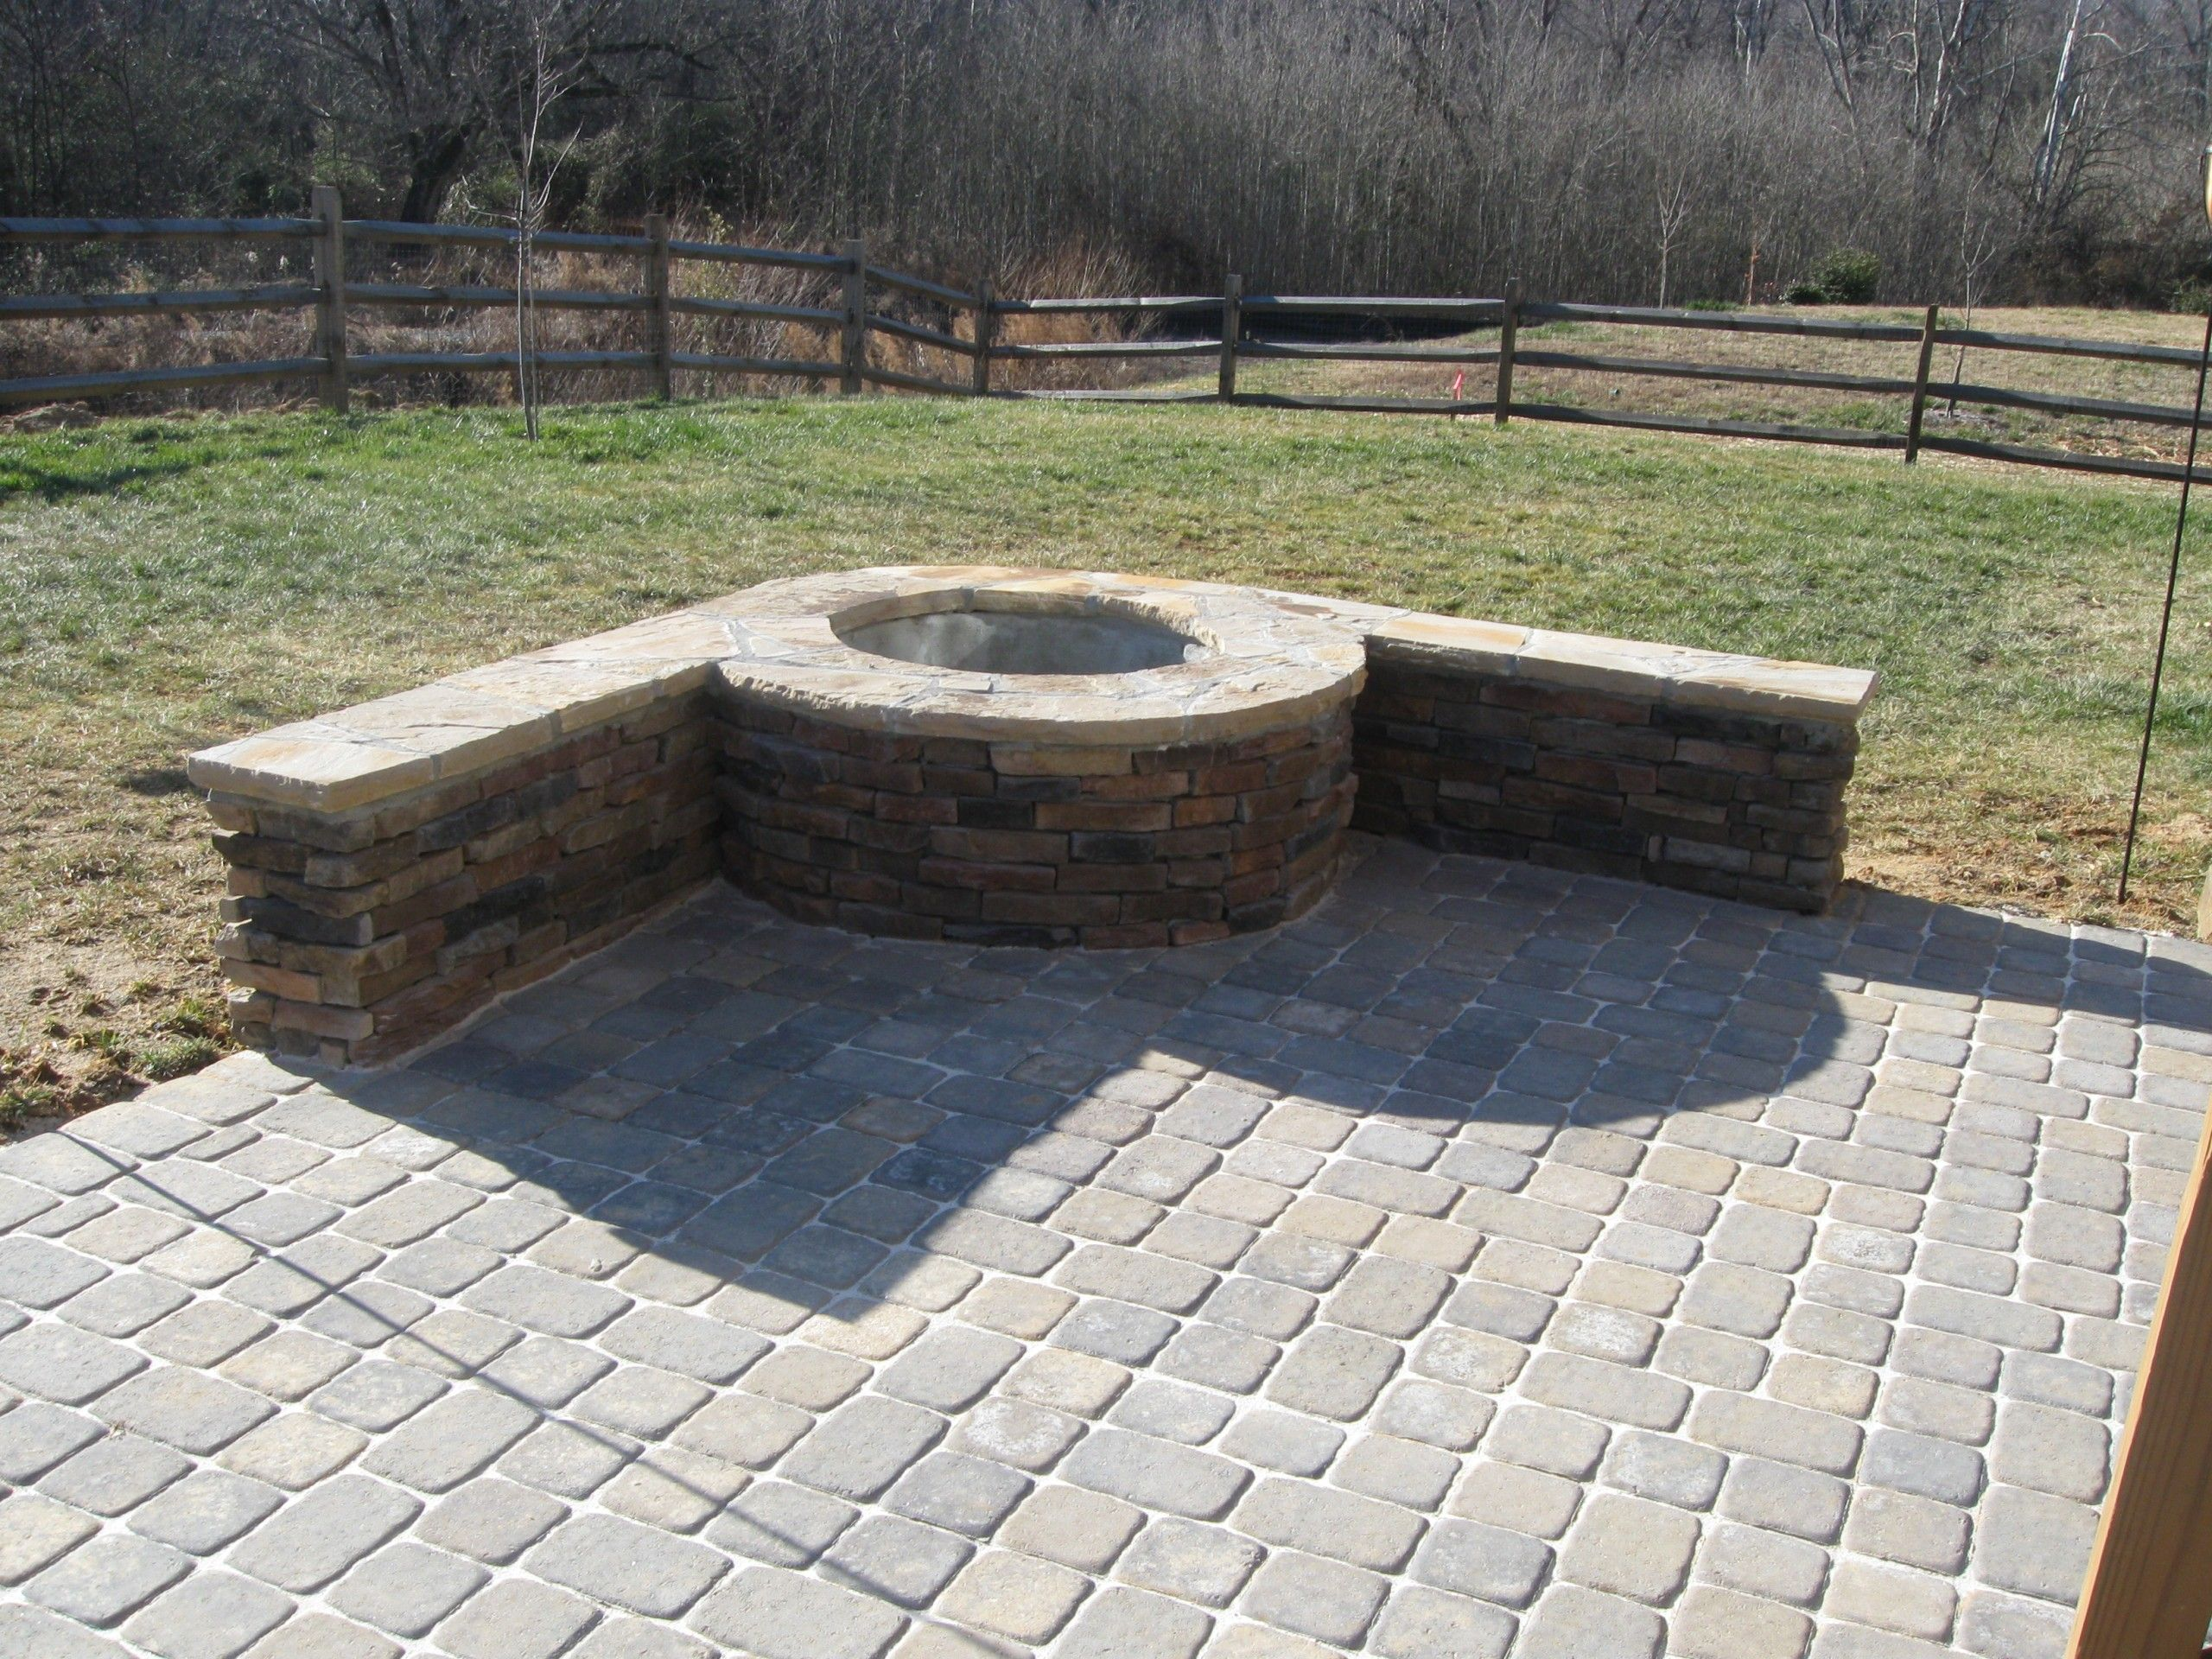 Stone fire pit designs patio traditional with artistic hardscape - 20 Creative Patio Outdoor Bar Ideas You Must Try At Your Backyard Firepit Ideaspatio Ideaslandscaping